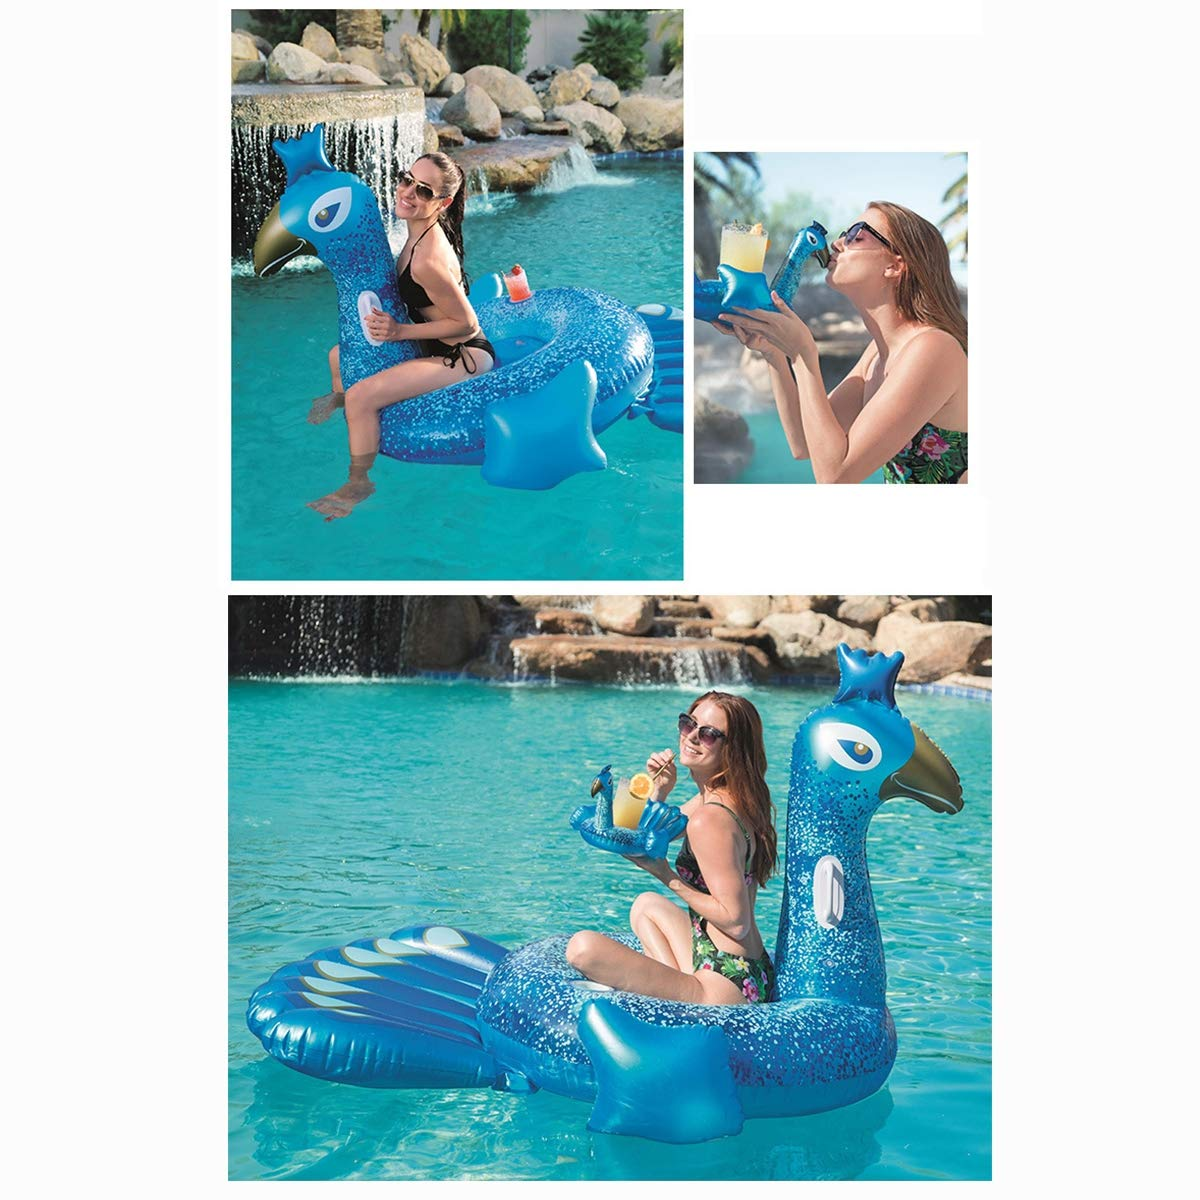 HECHEN Swimming Inflatable Floating Row 198164cm Children's Water Riding Toy Adult Large Peacock Shape Swimming Ring air Bed by HECHEN (Image #5)